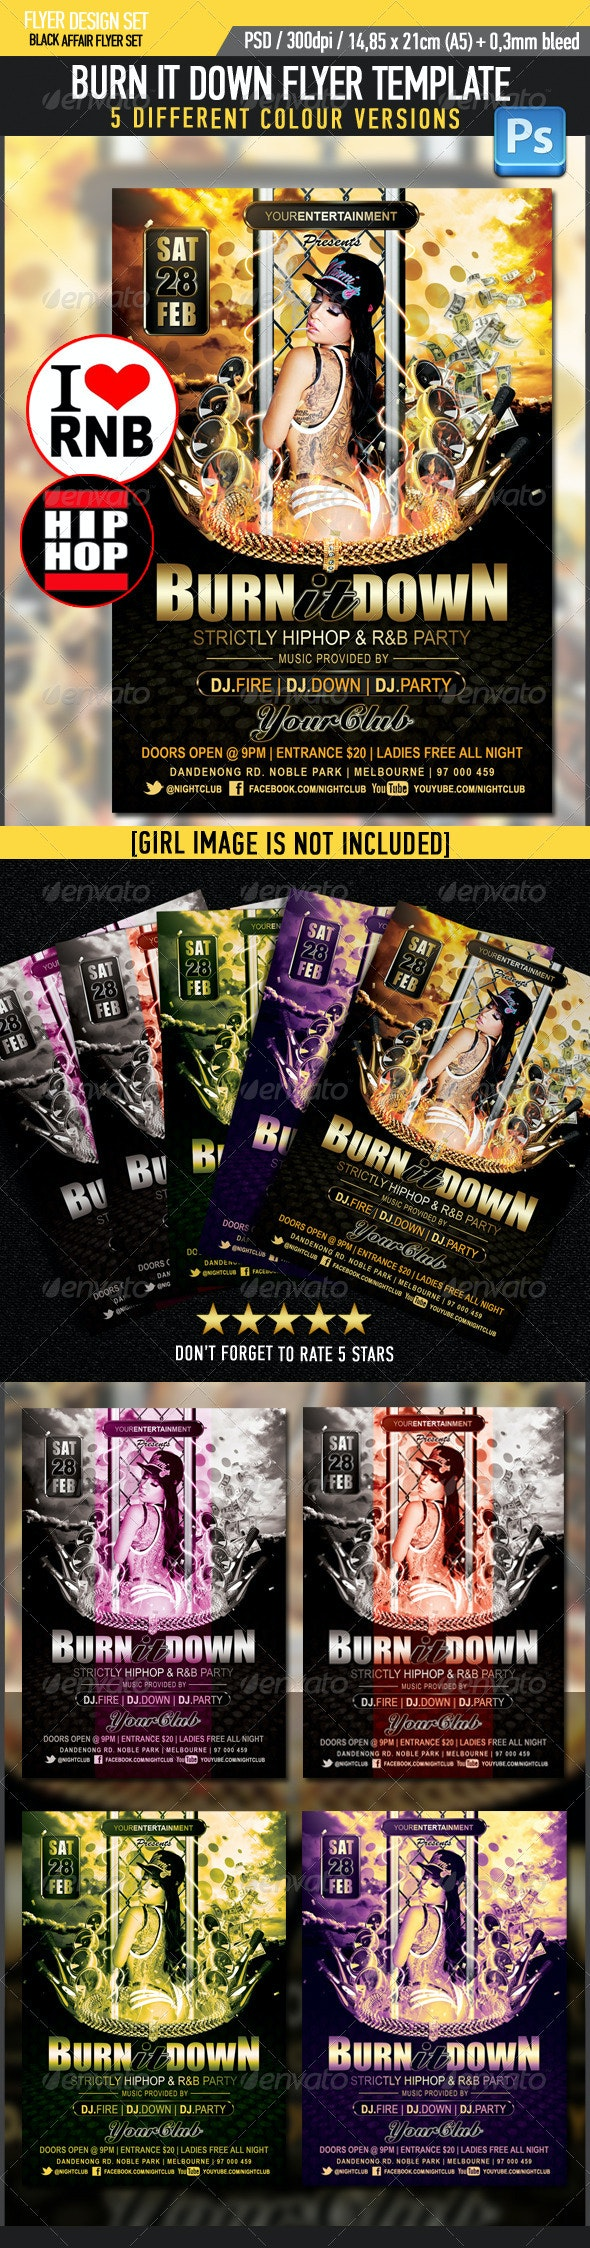 Burn Down R&B HipHop Flyer Template - Clubs & Parties Events